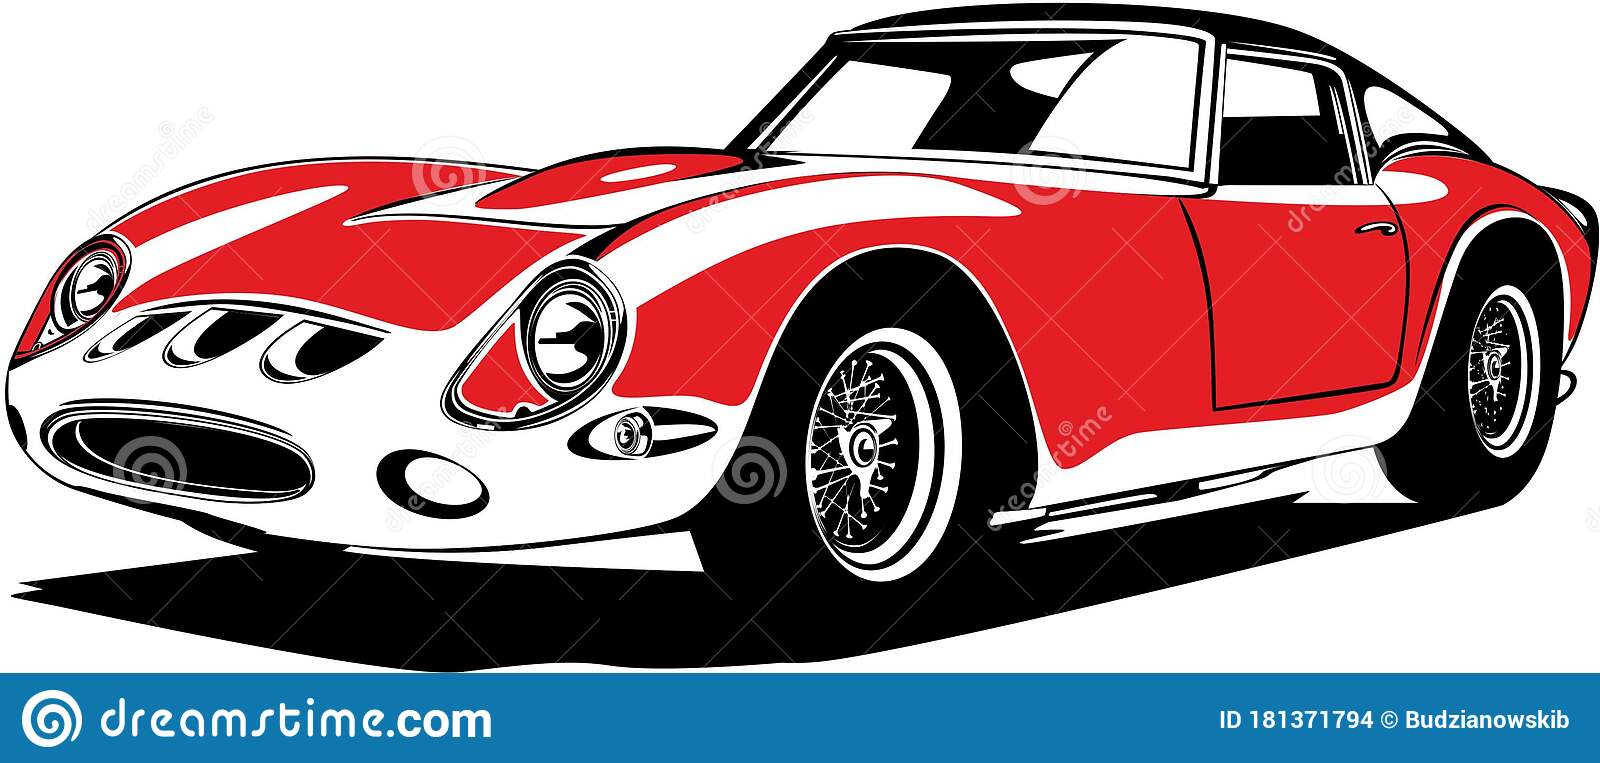 Ferrari Retro Stock Illustrations 36 Ferrari Retro Stock Illustrations Vectors Clipart Dreamstime